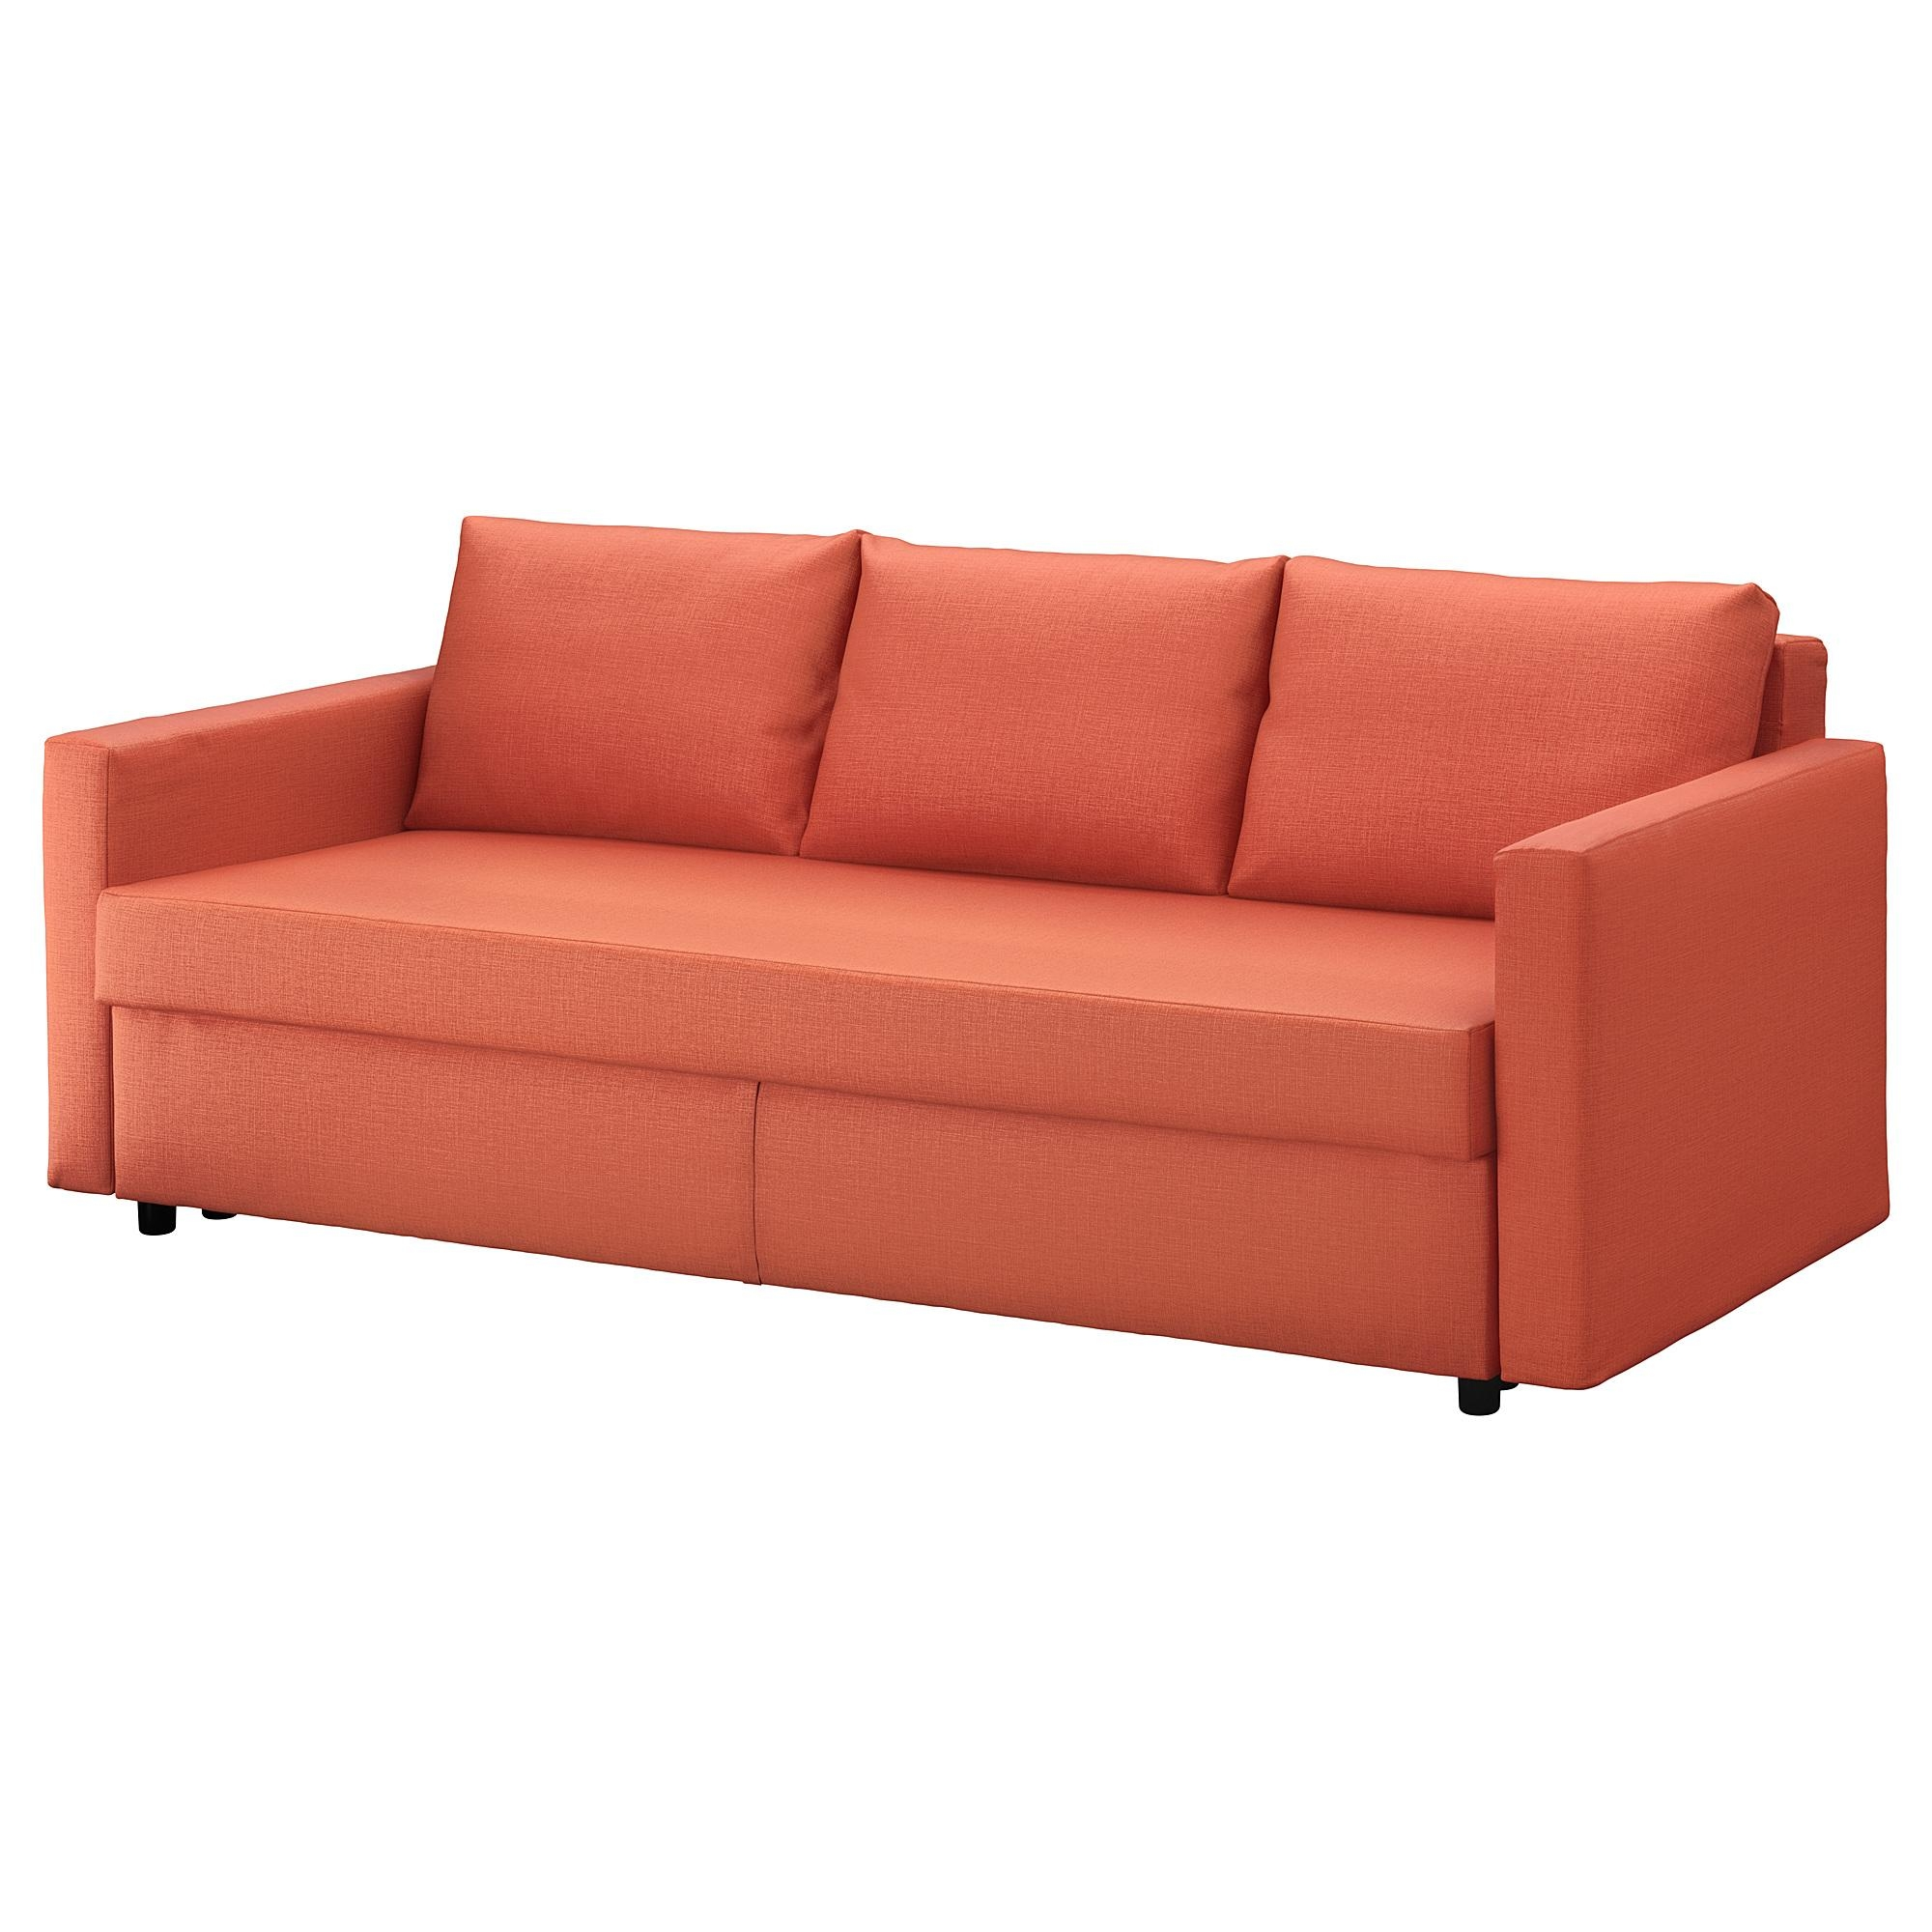 Friheten Sleeper Sofa – Skiftebo Dark Orange – Ikea With Regard To Orange Ikea Sofas (Image 6 of 20)